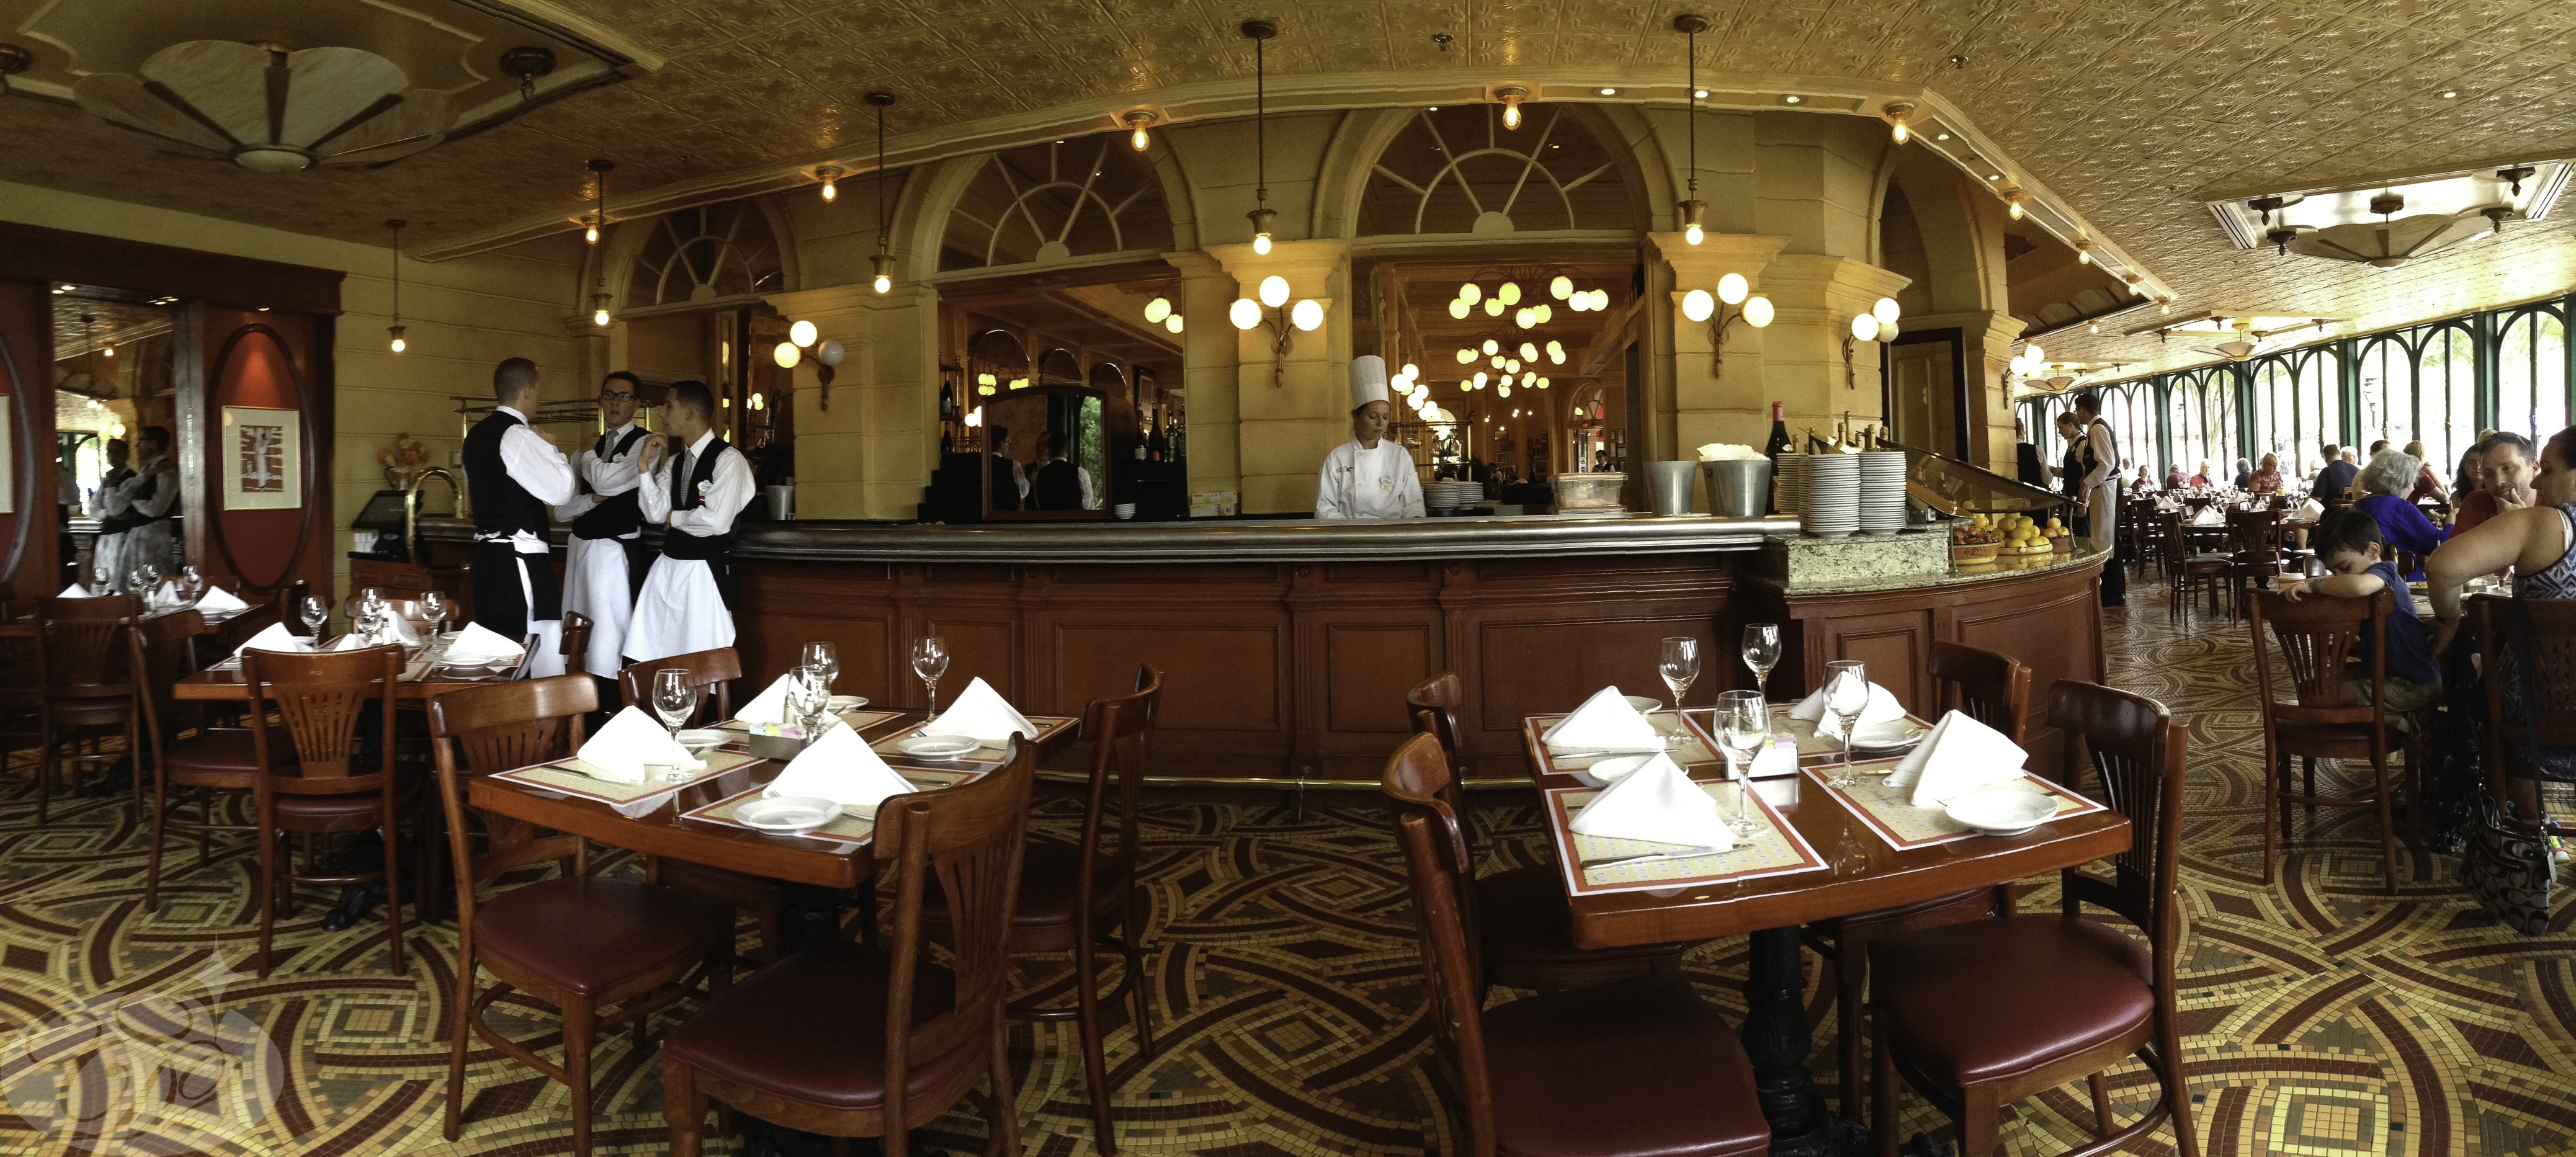 Full-Service Dining at Epcot's Le Chefs de France